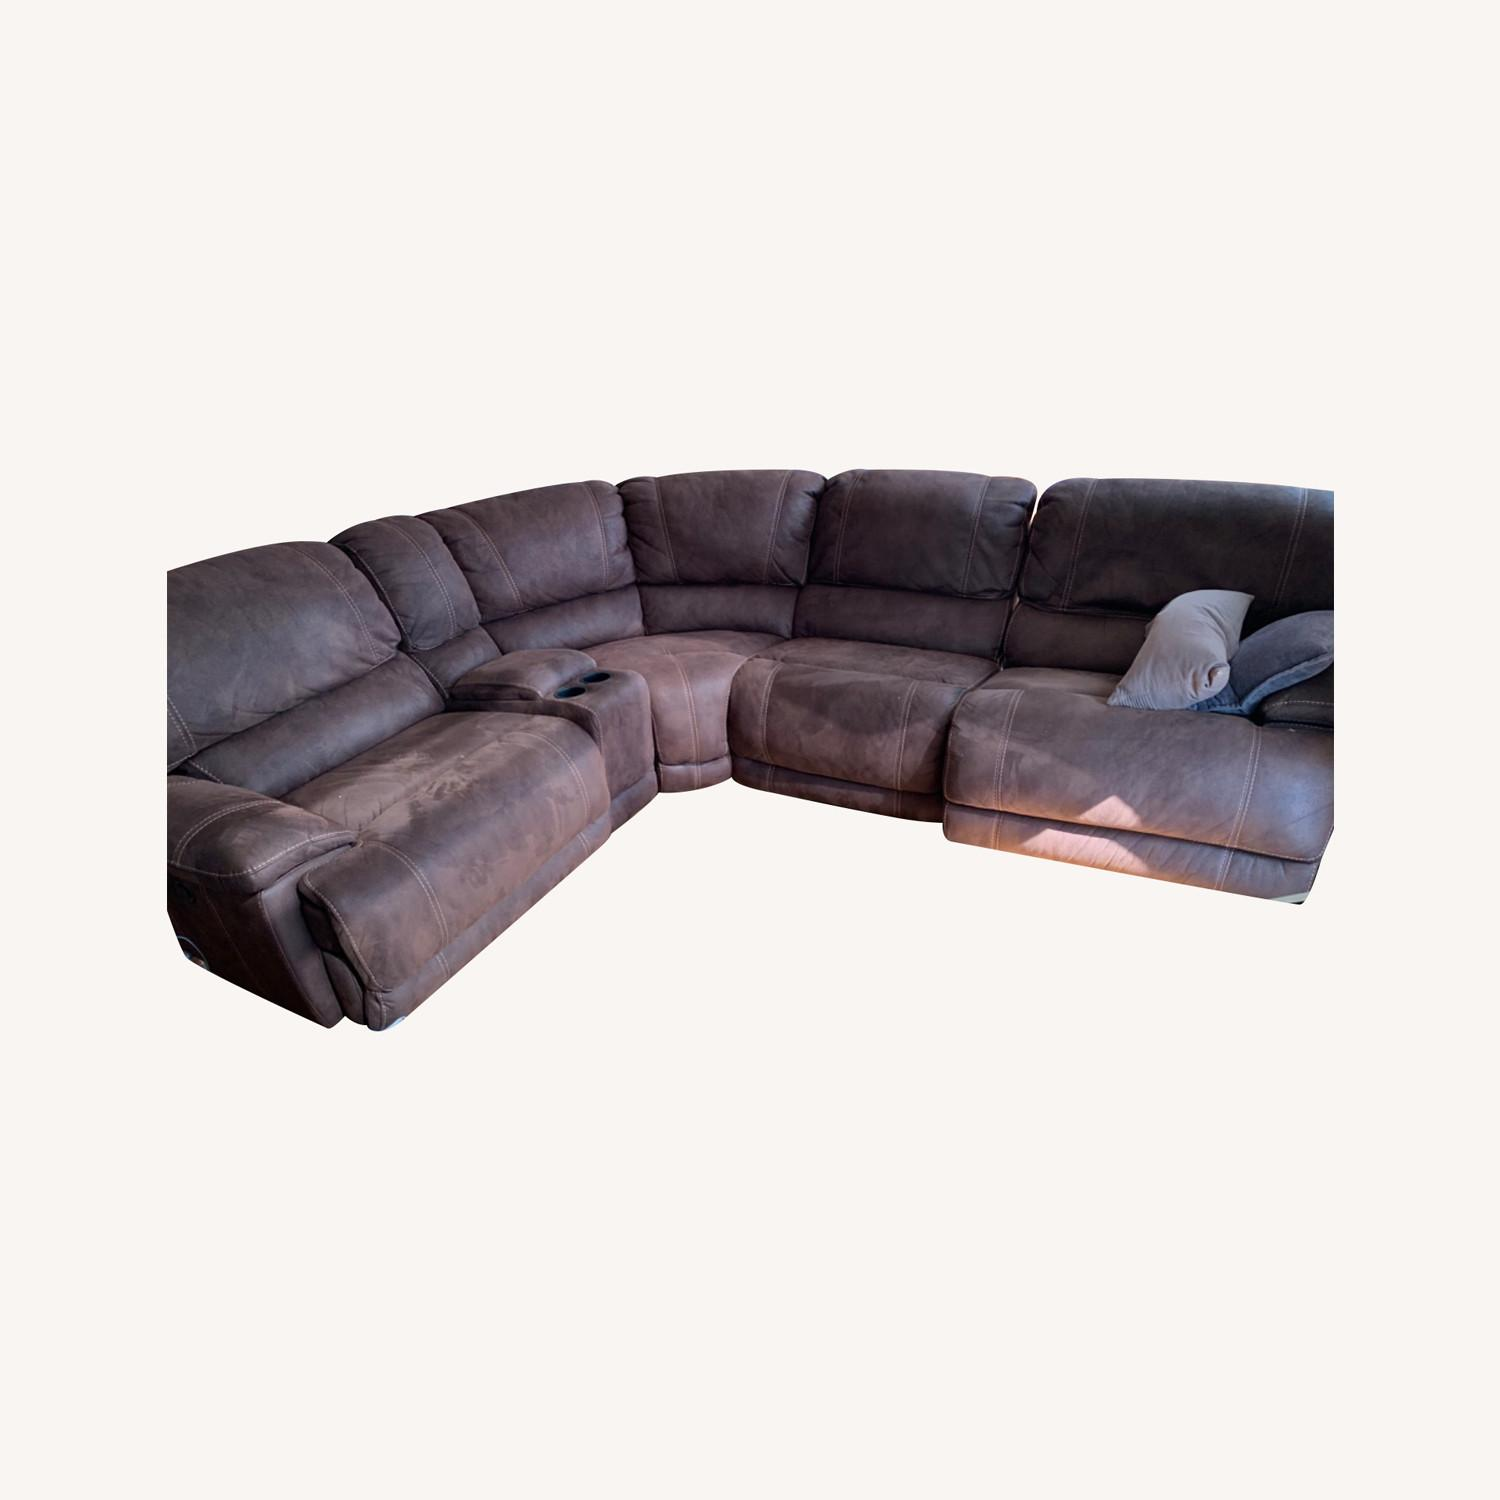 Pottery Barn Brown Leather 5 Piece Sectional - image-0